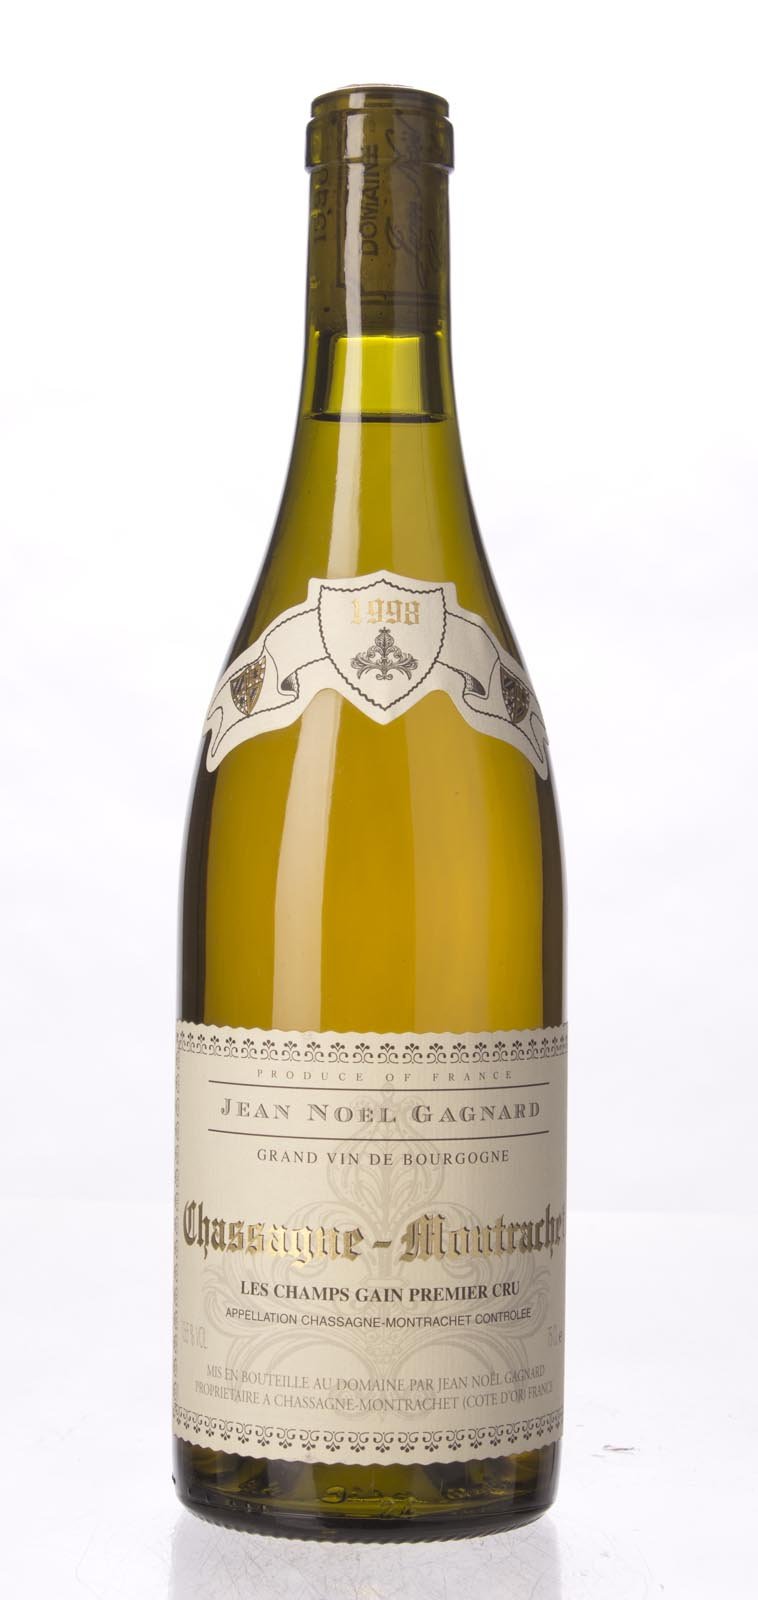 Domaine Jean Noel Gagnard Chassagne Montrachet les Champs Gains 1998, 750ml () from The BPW - Merchants of rare and fine wines.